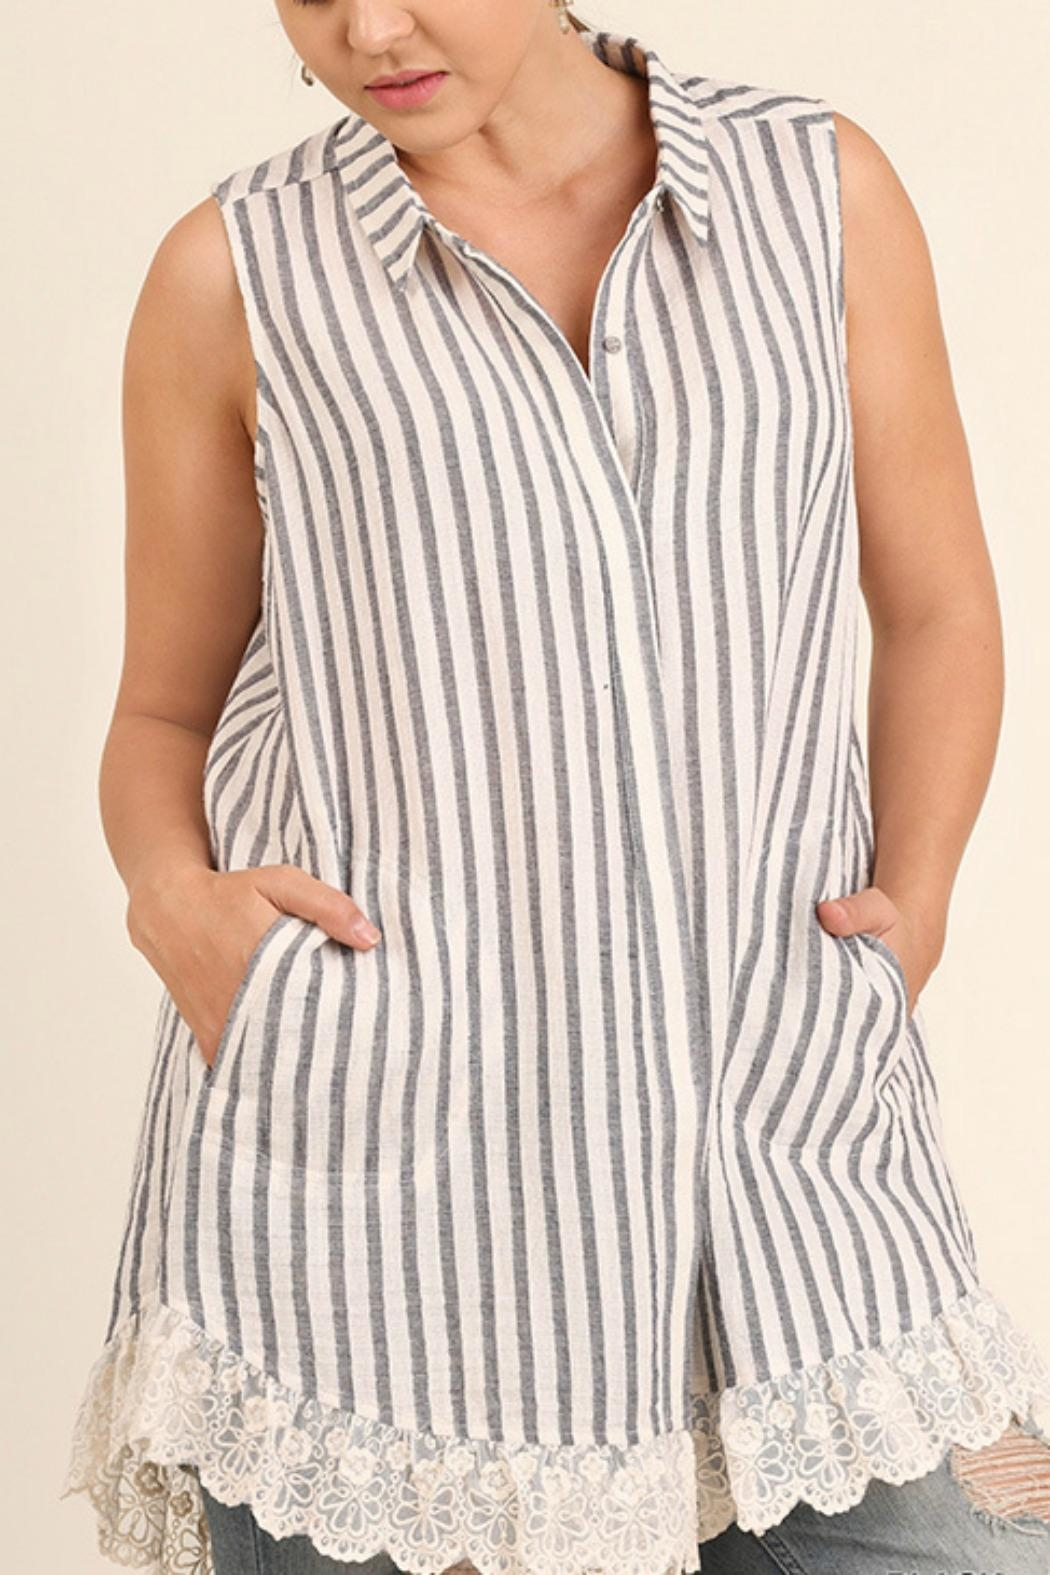 UMG PLUS Striped Collared Tunic - Front Cropped Image